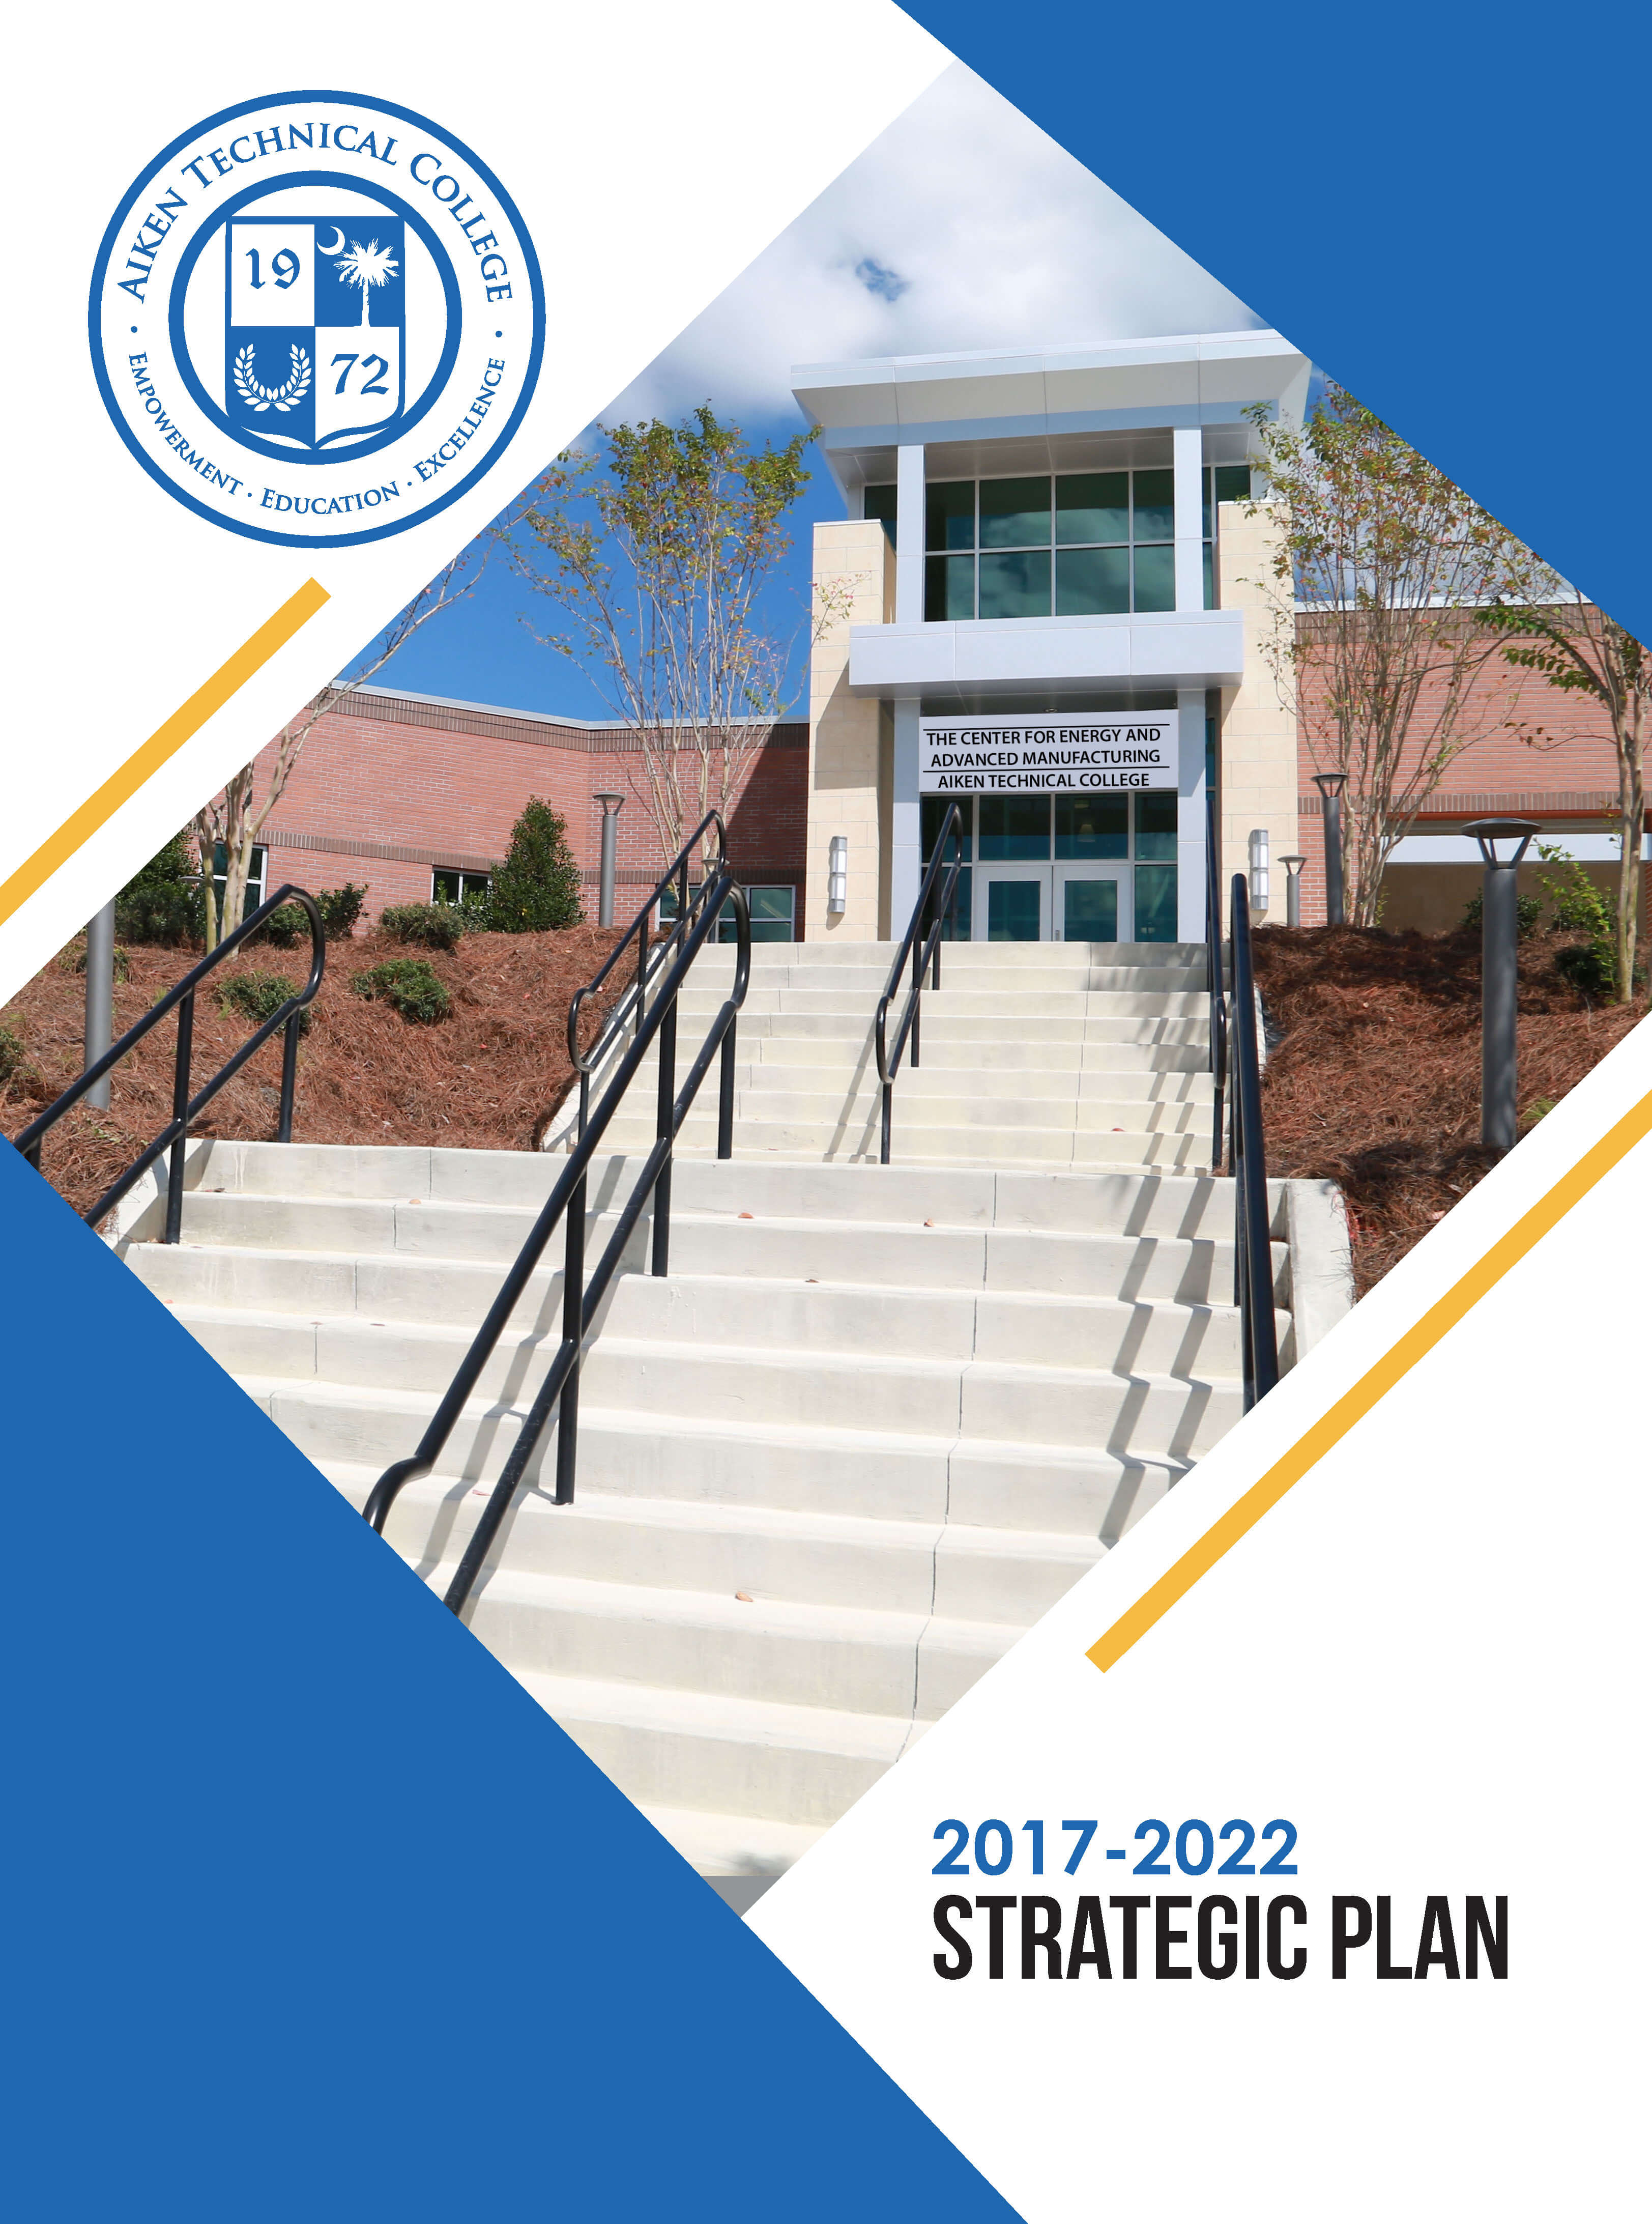 Aiken Technical College Strategic Plan for 2017 to 2022